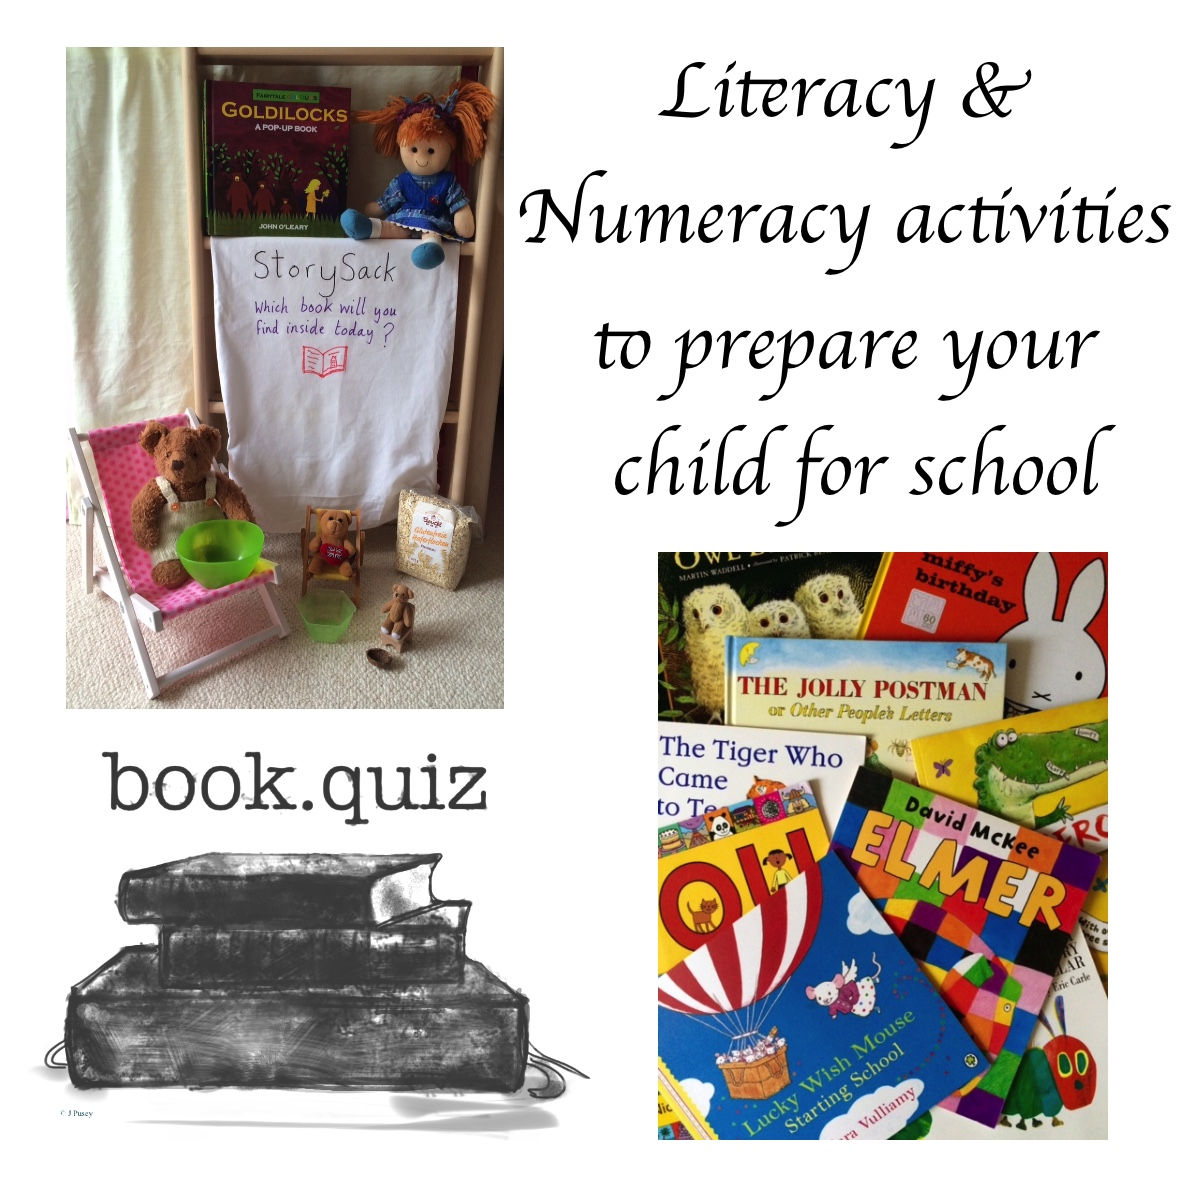 Literacy & Numeracy activities to prepare your child for school